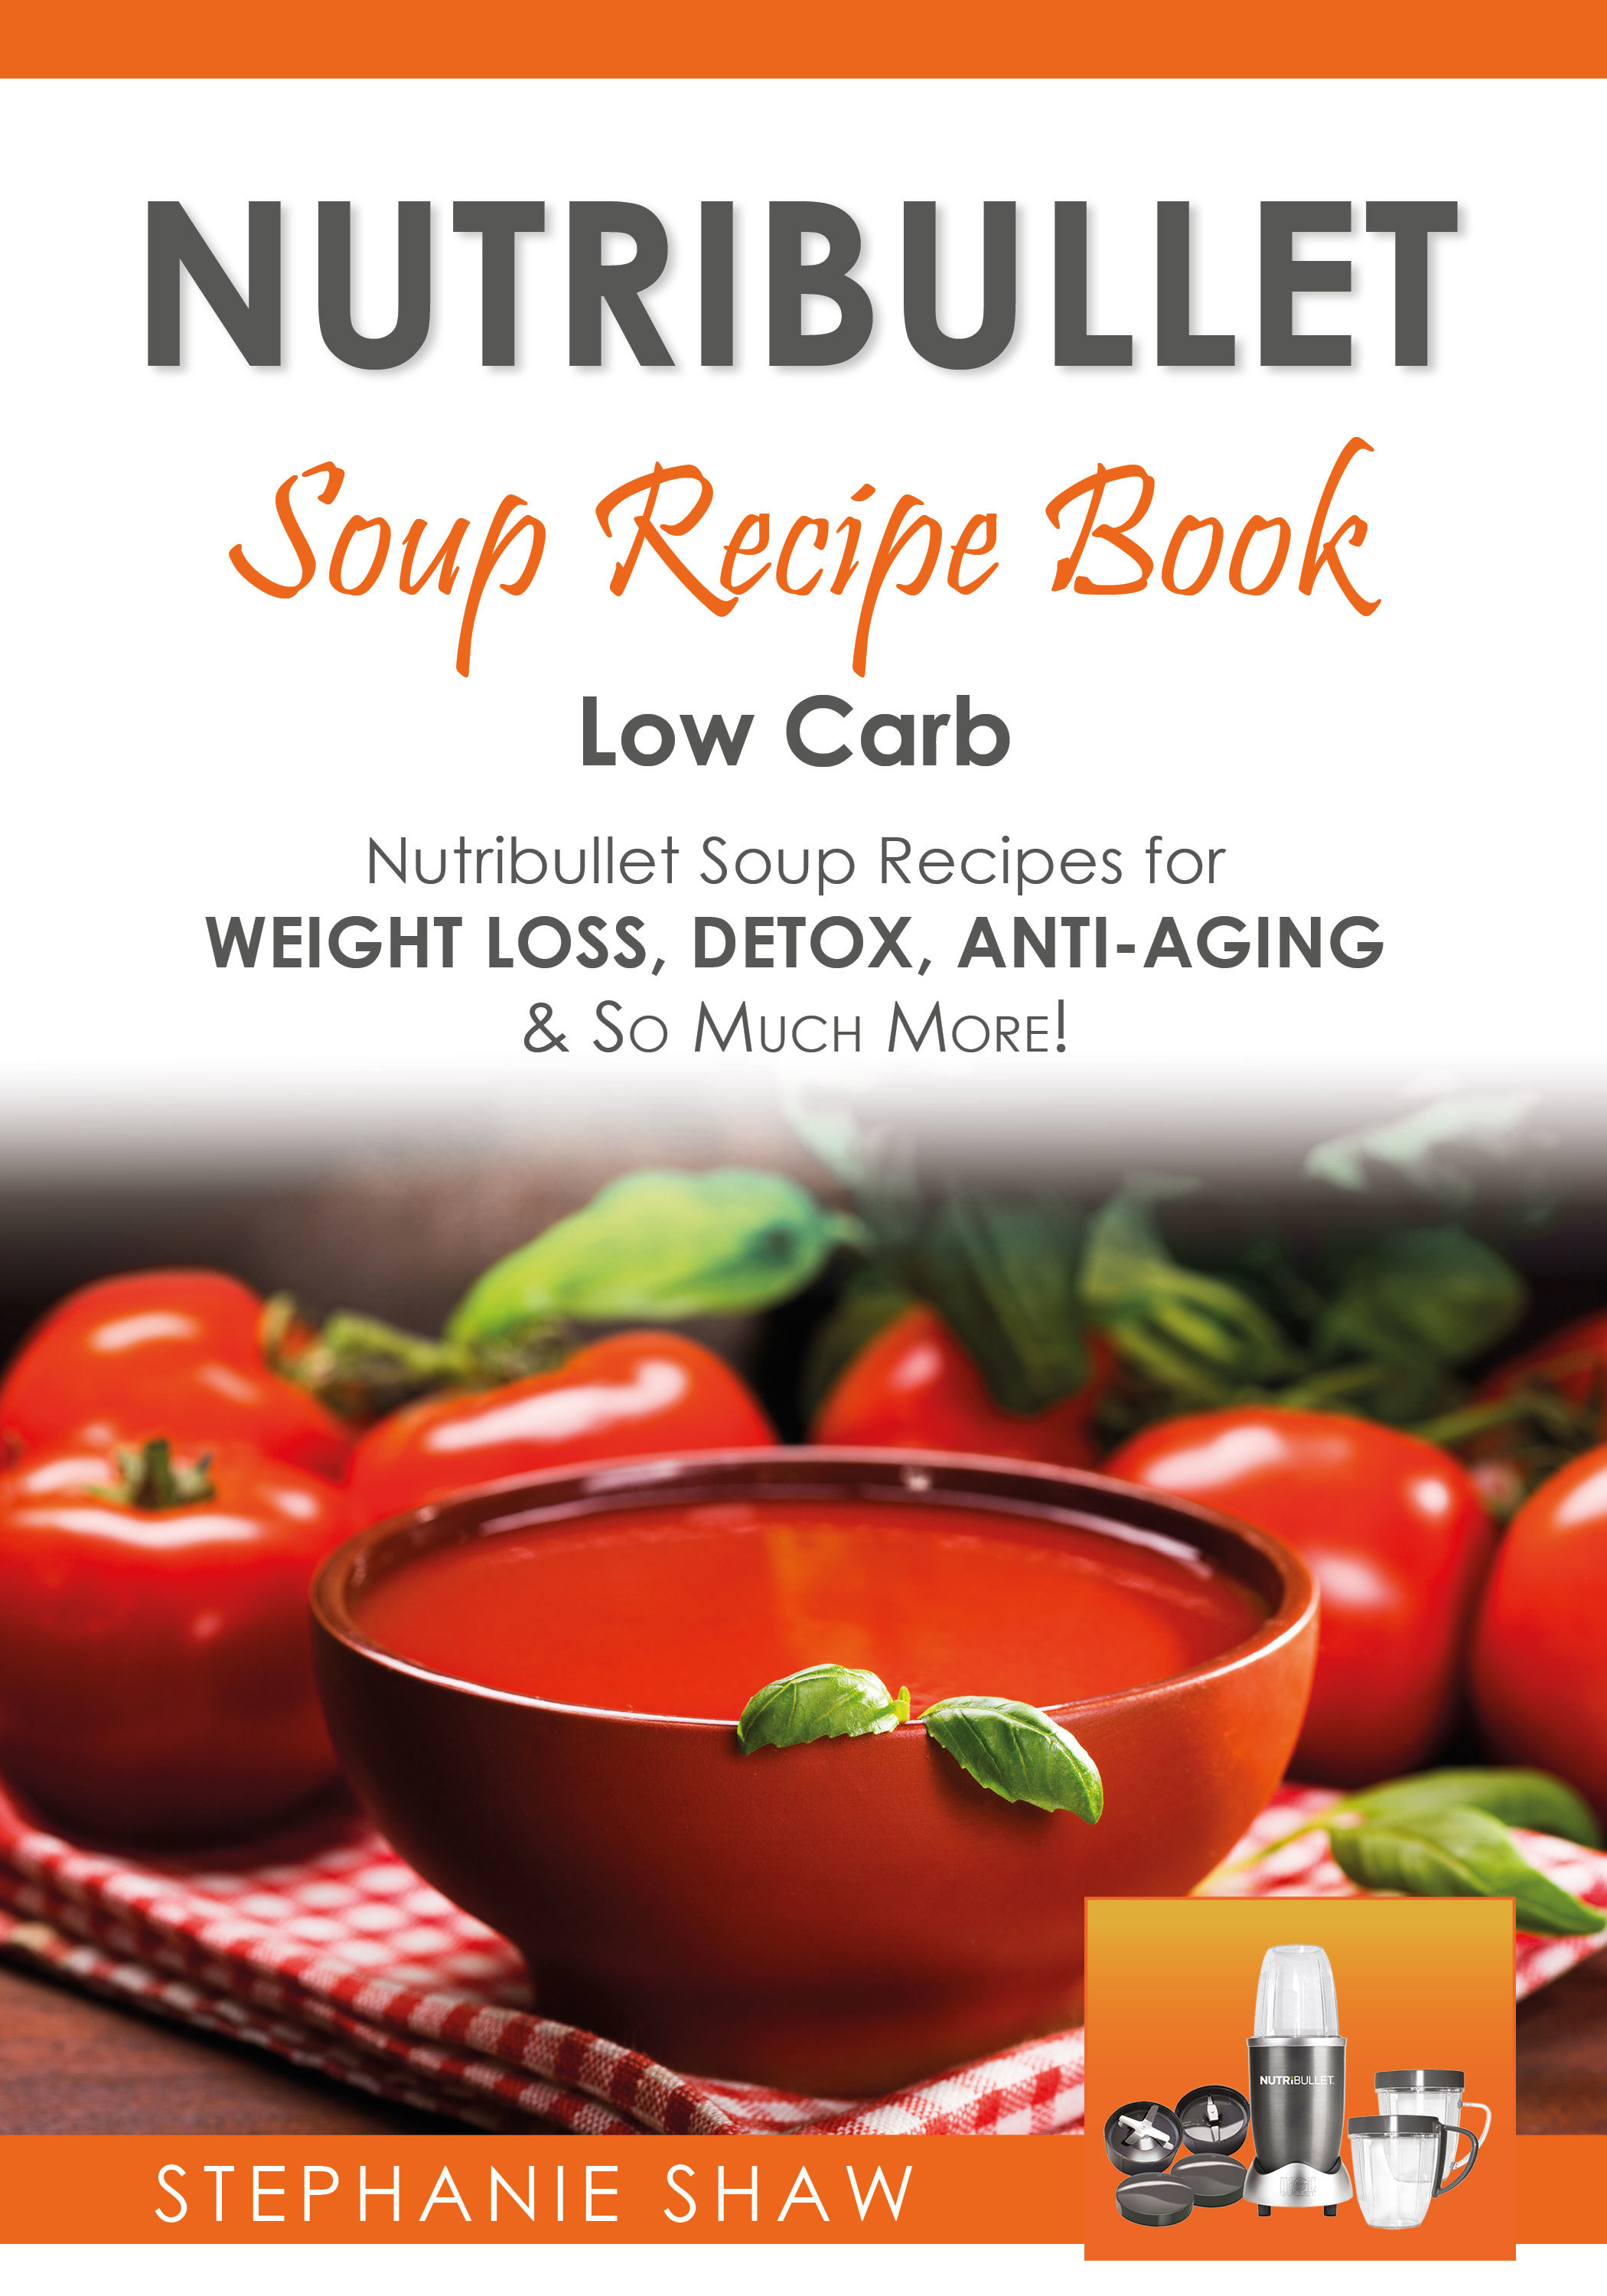 Nutribullet Soup Recipe Book: Low Carb Nutribullet Soup Recipes for Weight Loss, Detox, Anti-Aging & So Much More! (Recipes for a Healthy Life, #3)